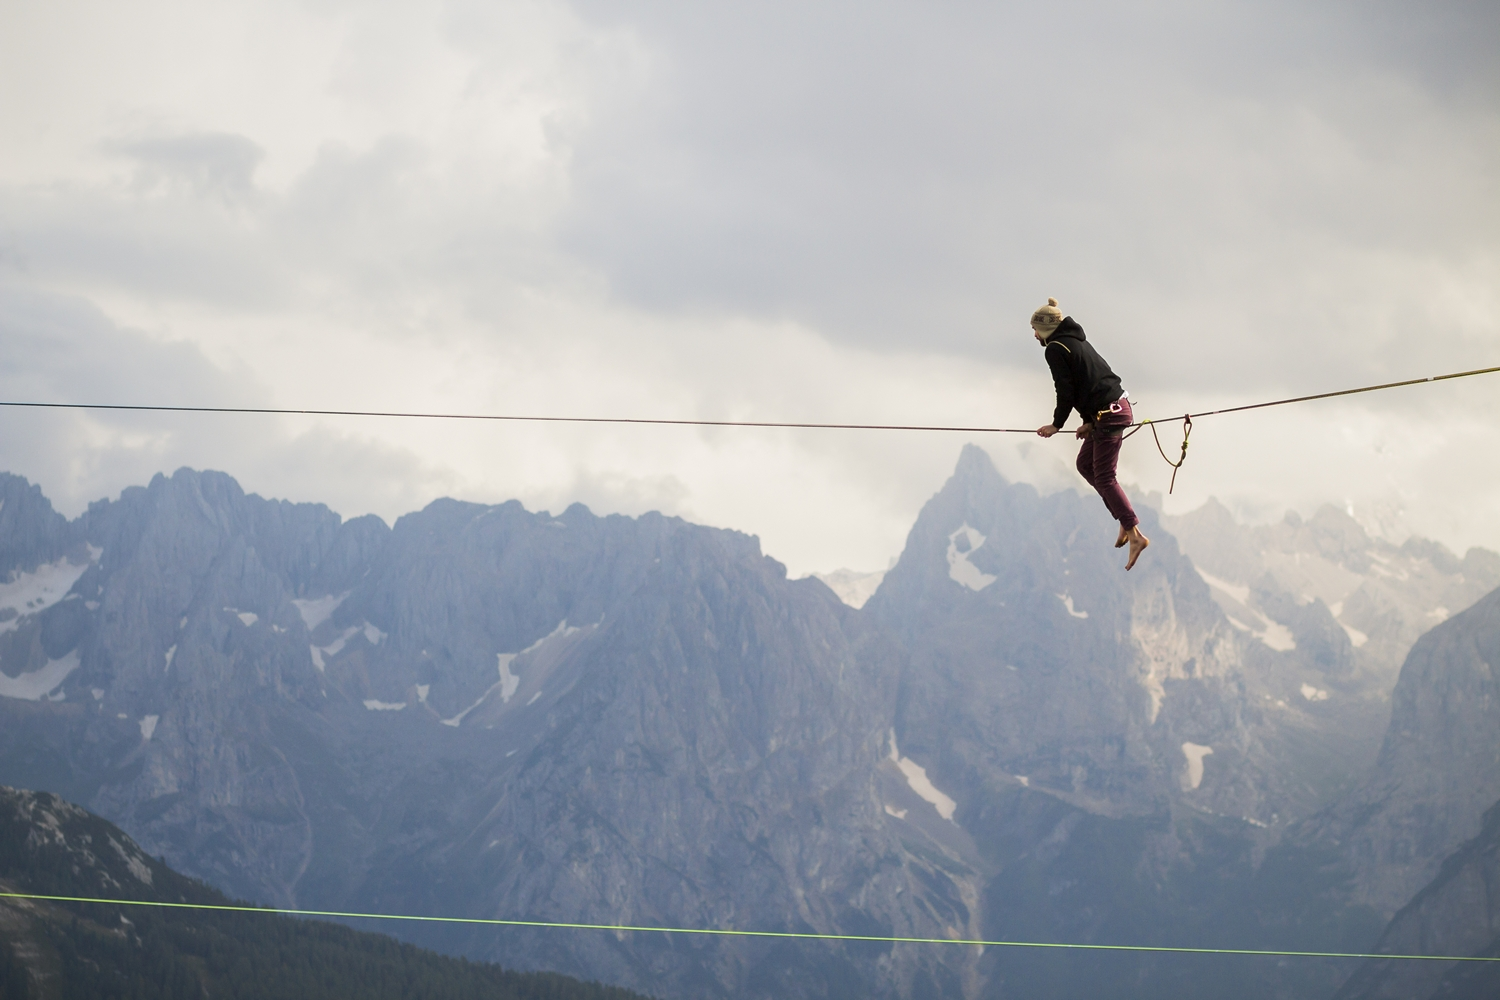 orosz_adam_outdoorinhales_highline_monte_piana_2014_05